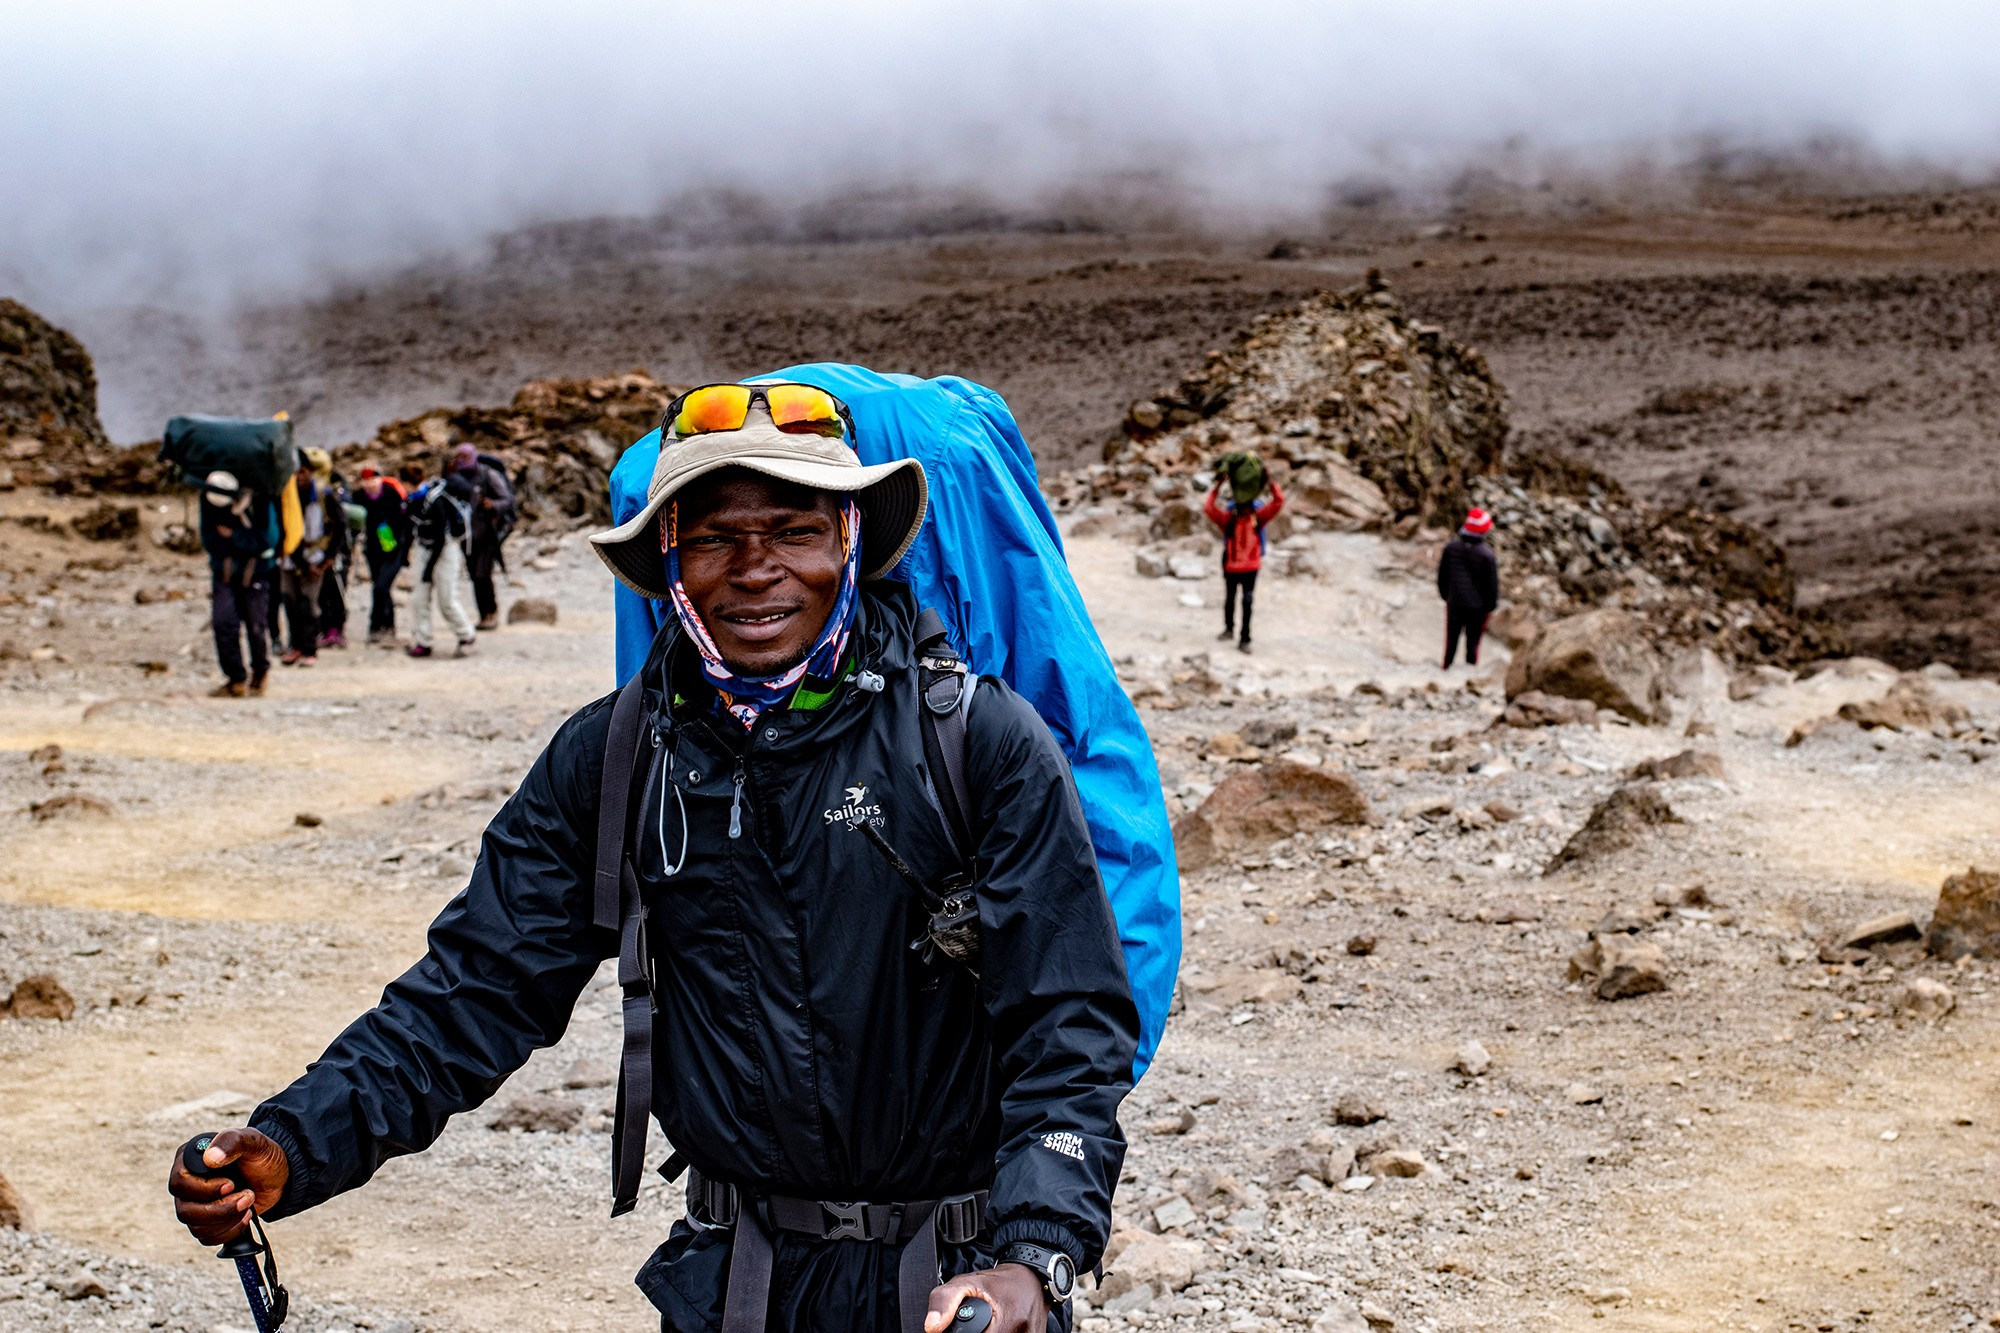 Sailors' Society is planning a fundraising climb of Kilimanjaro in August